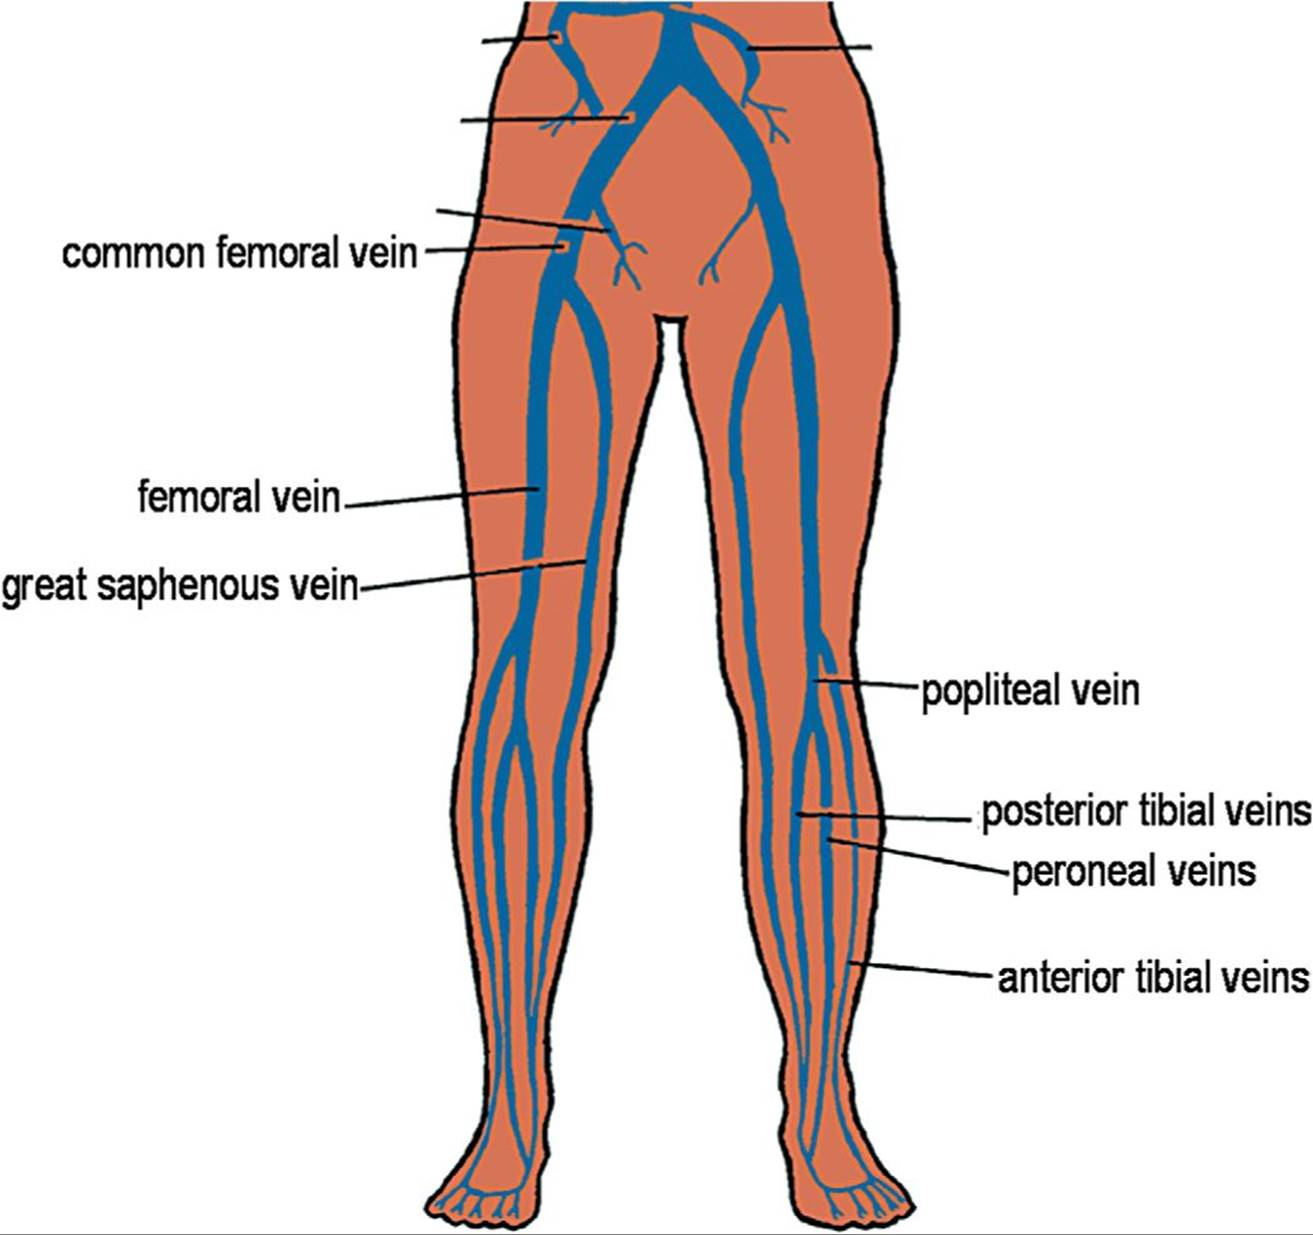 foot pulses diagram er for hospital management of lower extremity free wiring you peripheral vein aorta elsavadorla vessels arteries